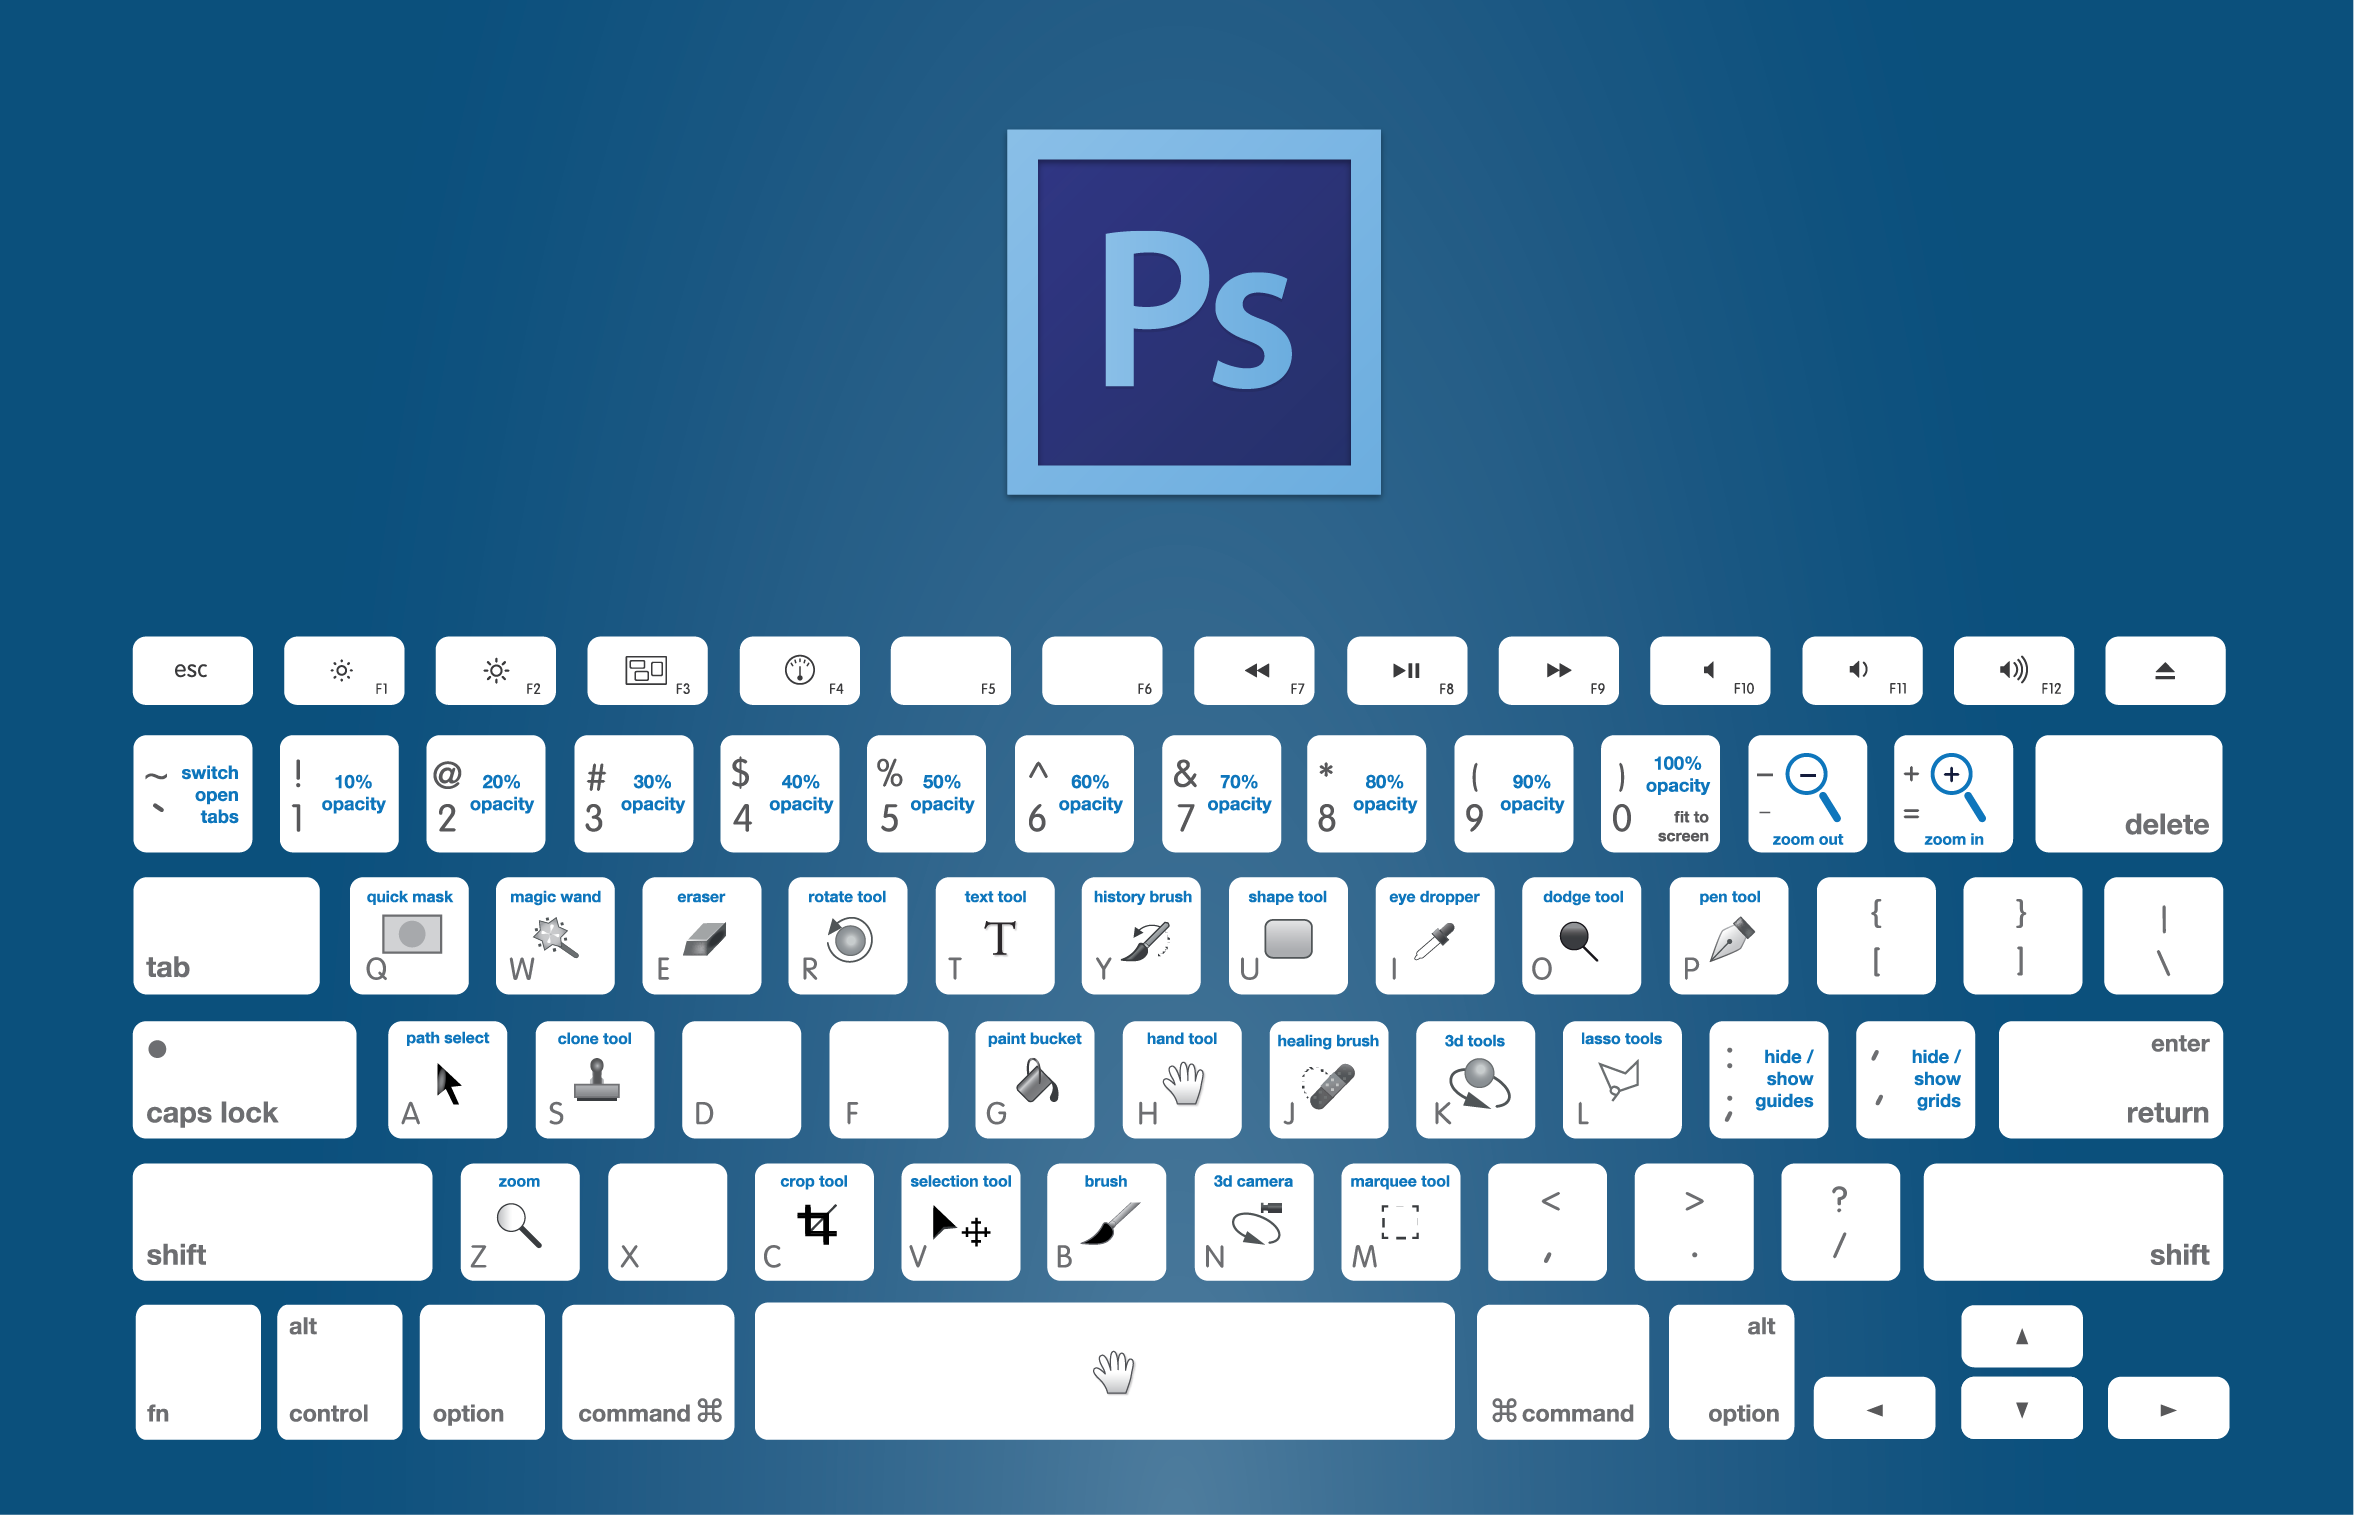 Chart of the keyboard shortcuts to use in Adobe Photoshop: